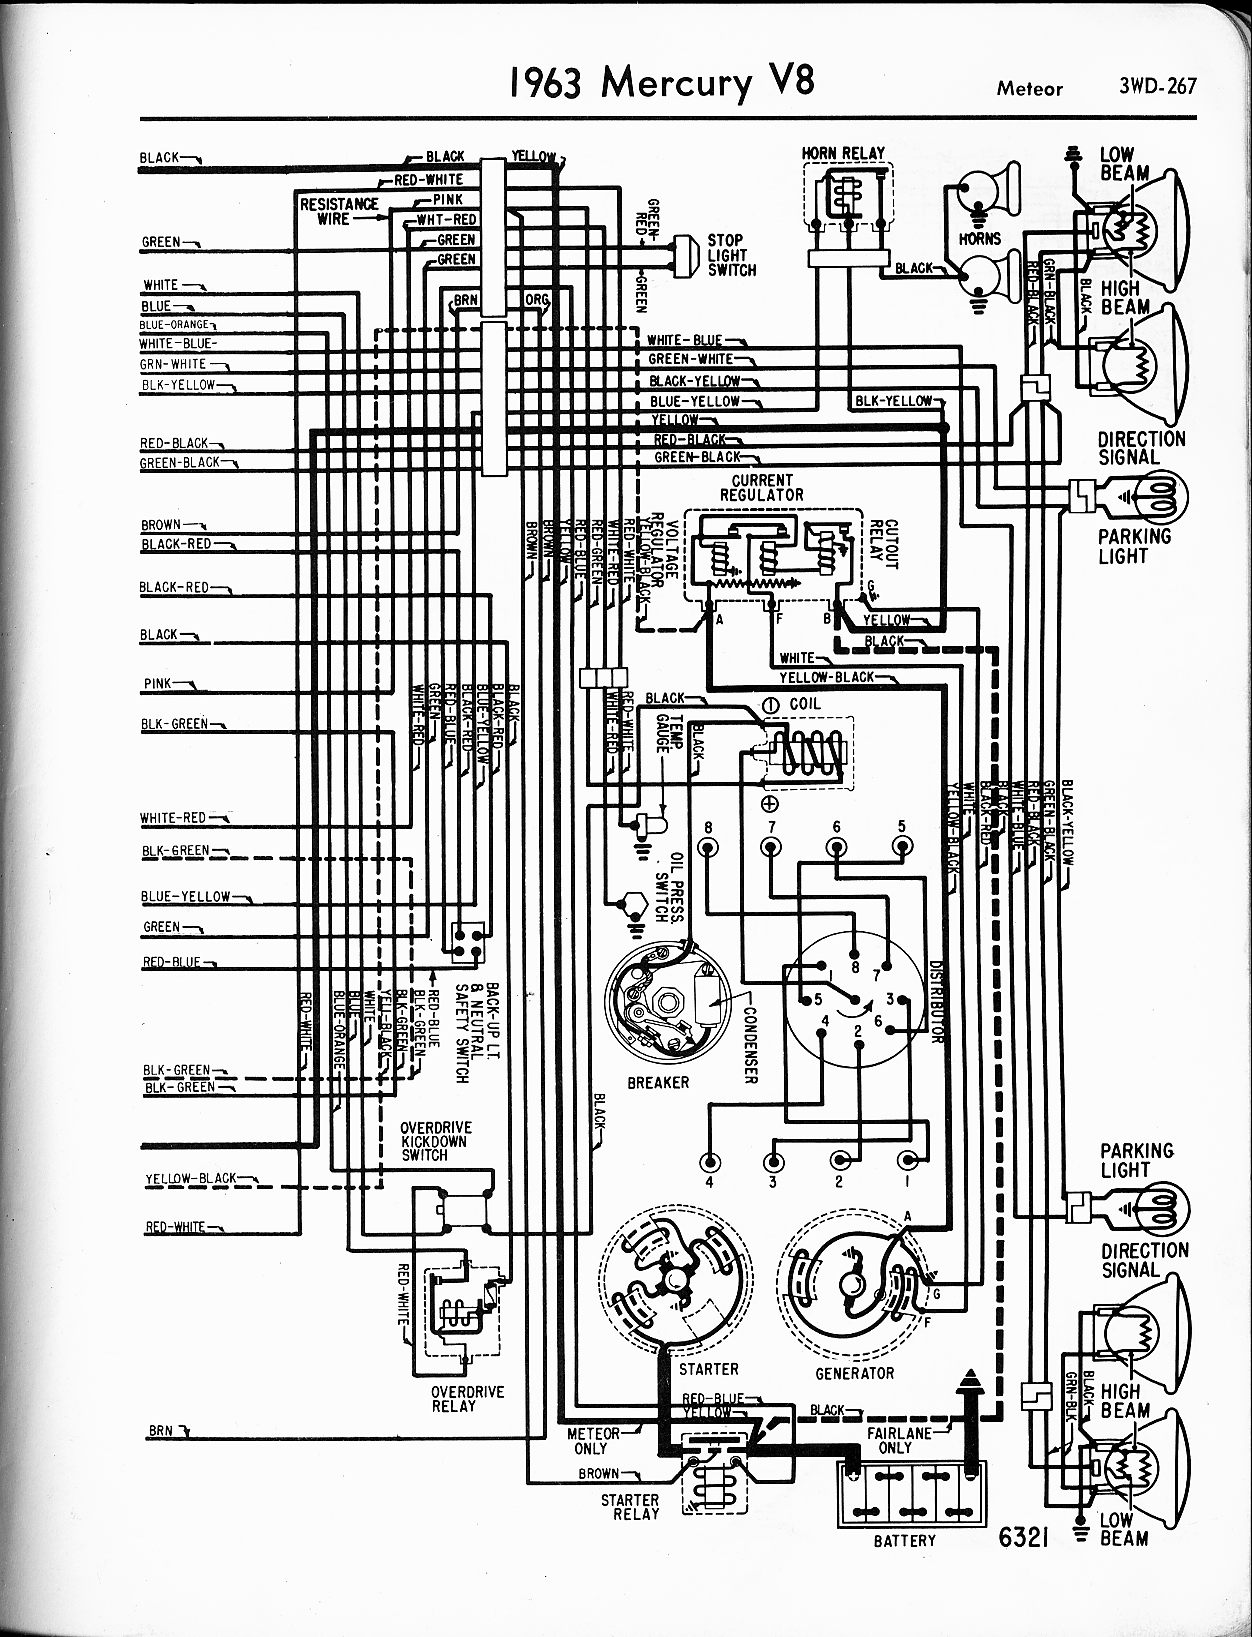 1997 mercury cougar wiring diagram wiring library Club Car Wiring Diagram mercury wiring diagrams the old car manual project rh oldcarmanualproject 1963 mercury meteor wiring diagram